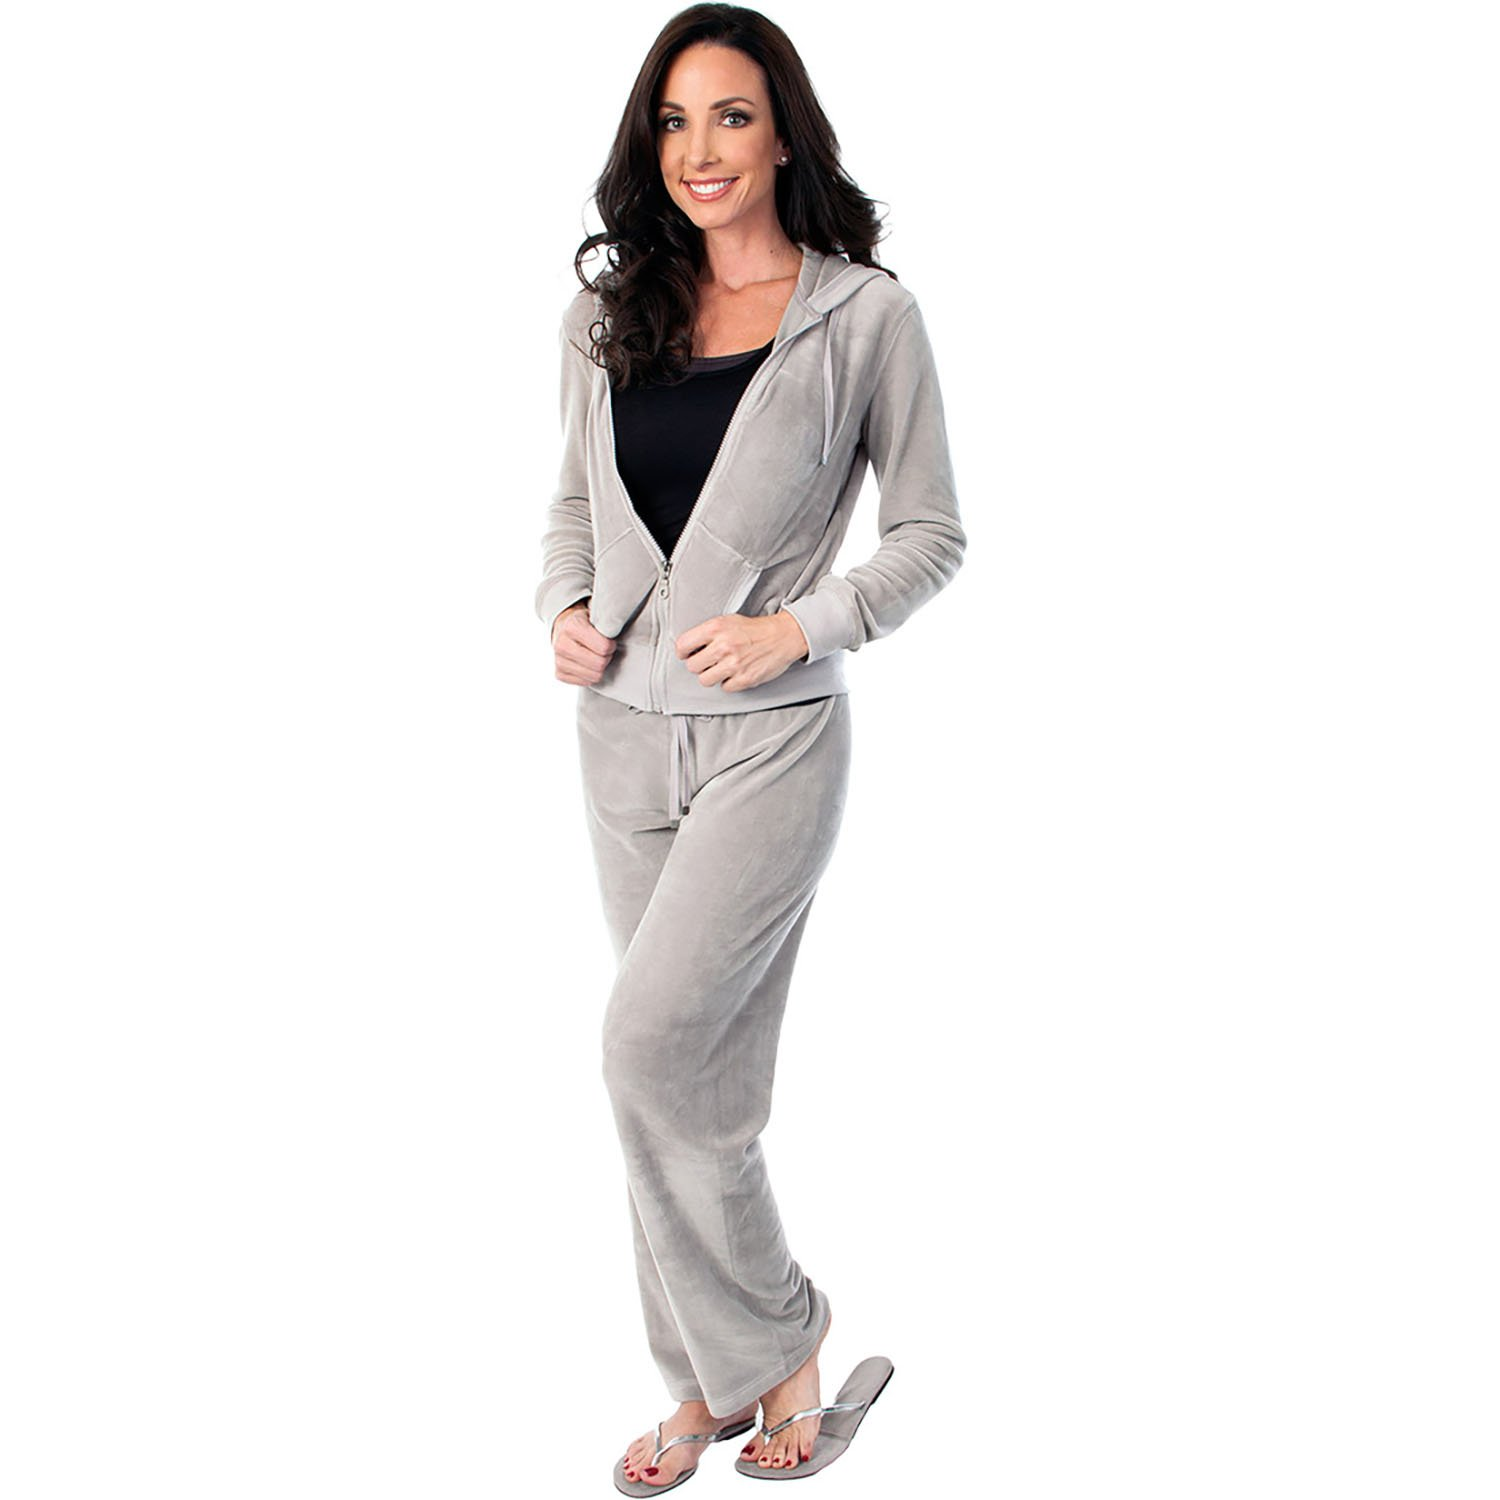 Agiato Womens Zip Up Plush Soft Velour Jogging Track Suit (Gray, Medium)